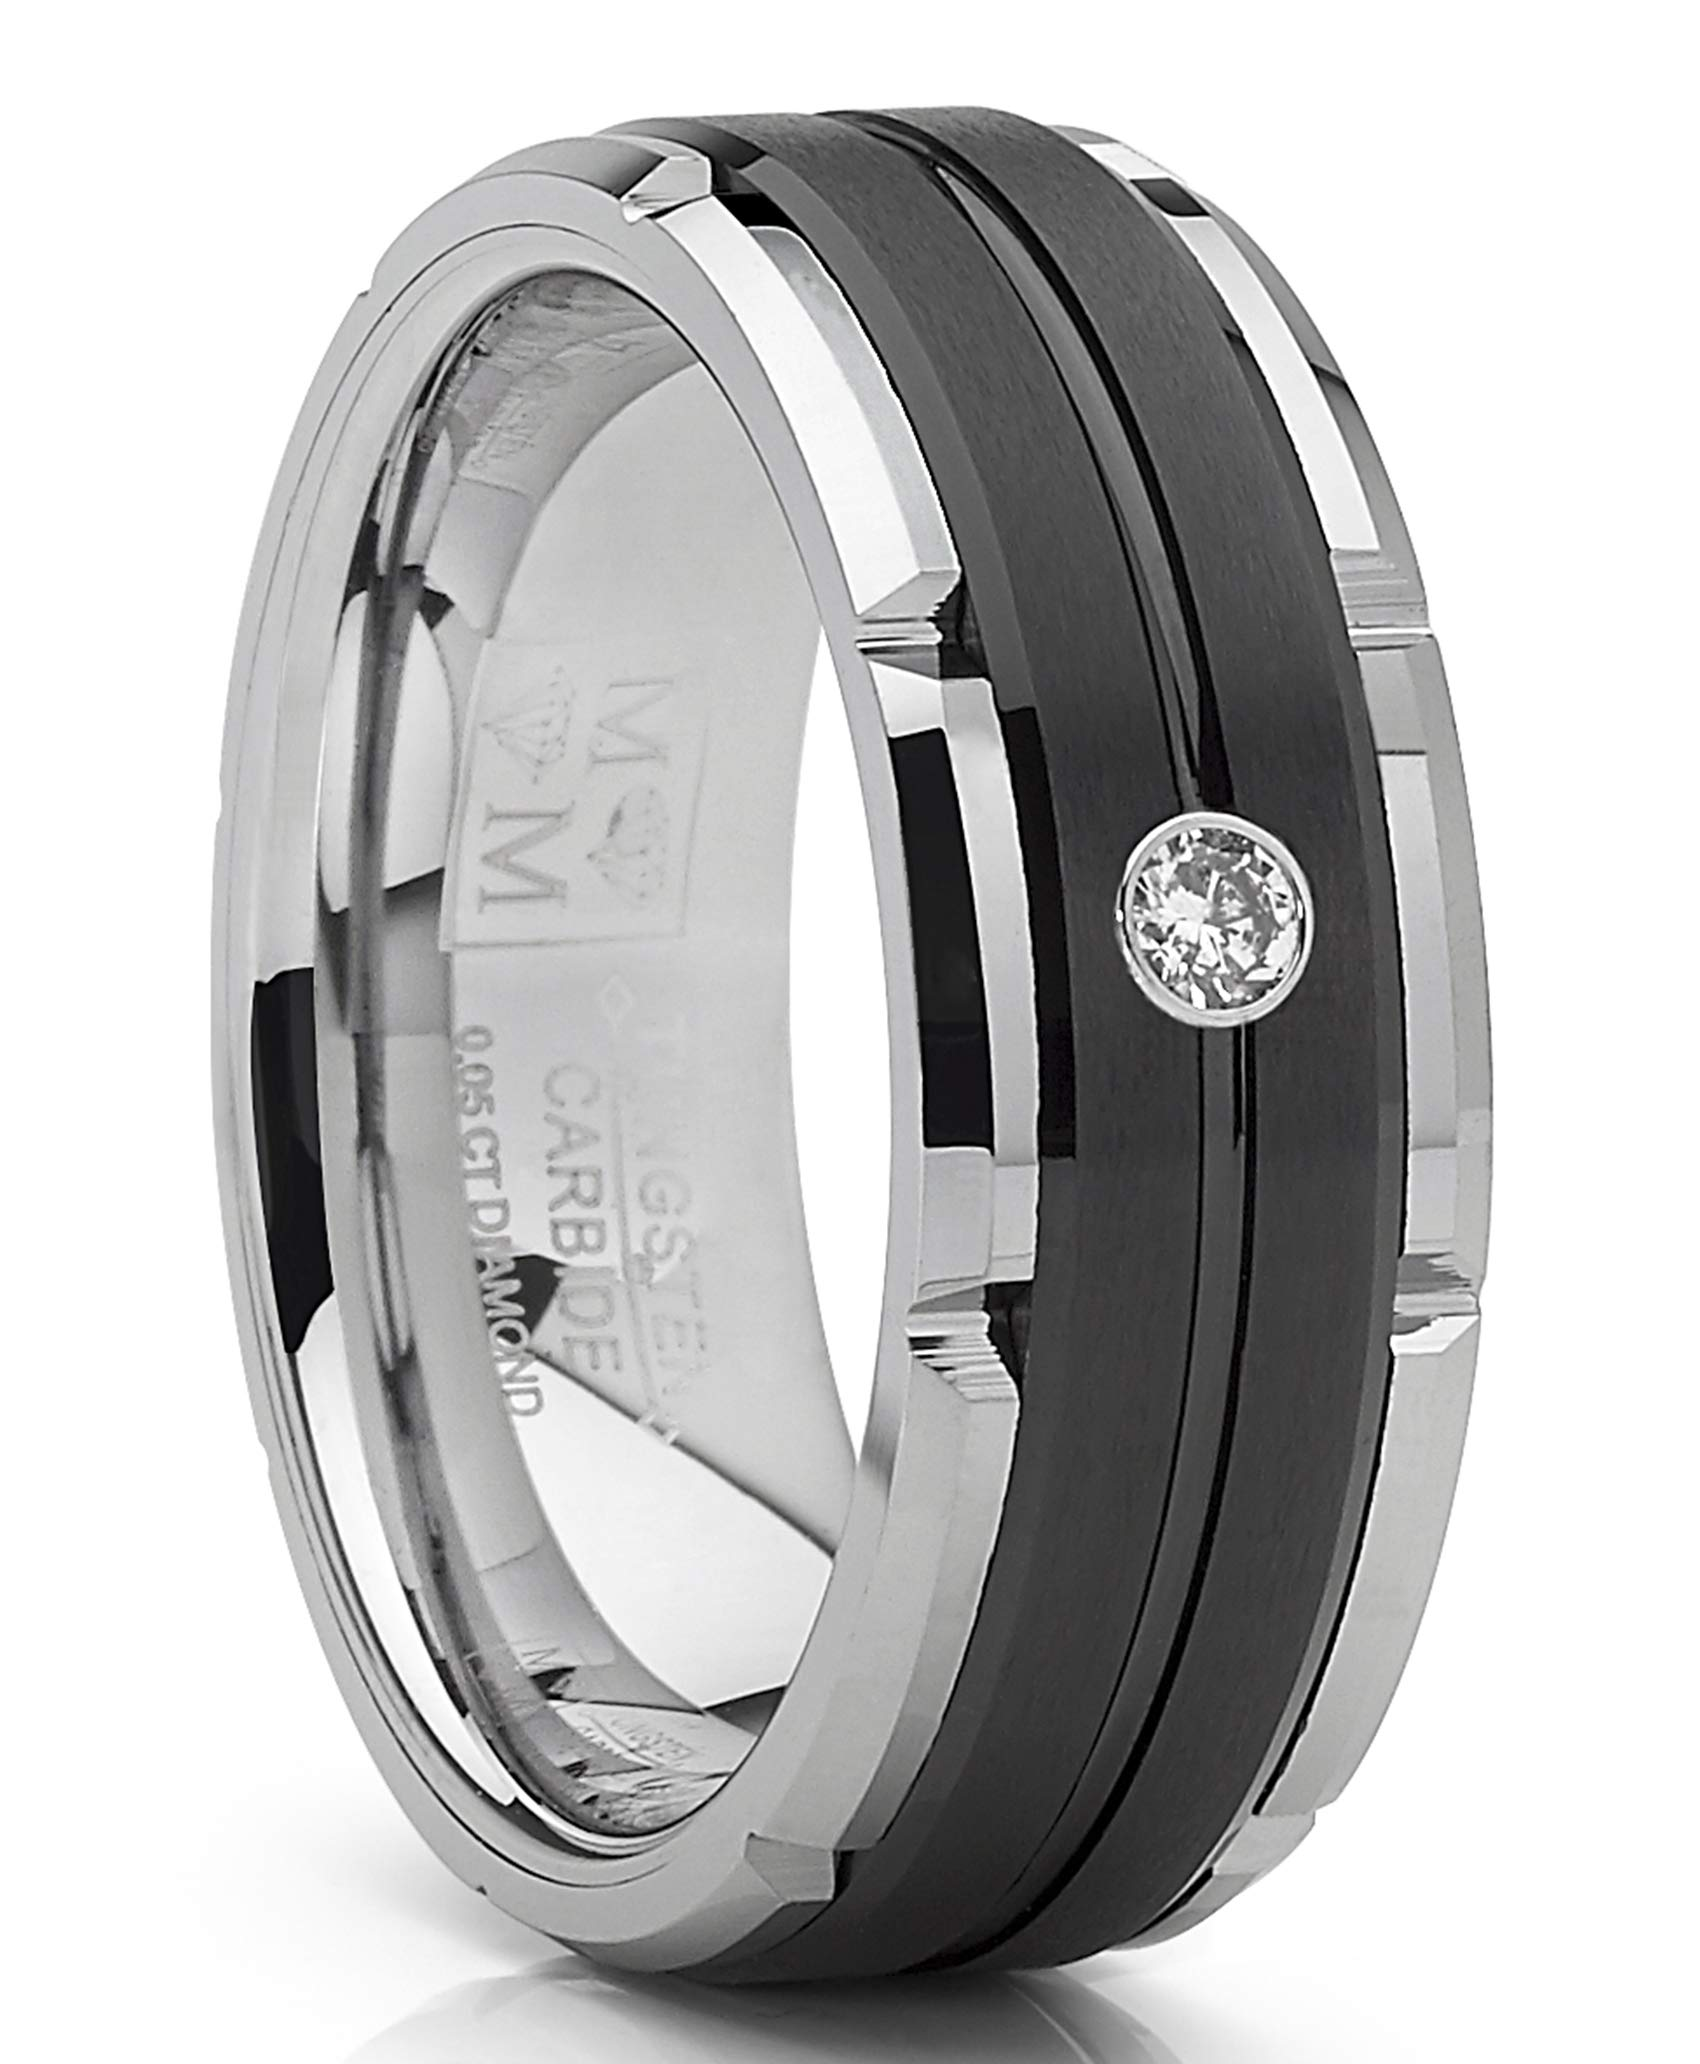 Metal Masters Co. Men's Tungsten Carbide Wedding Band Real Diamond .05 Two Tone Black Ring 8mm 8.5